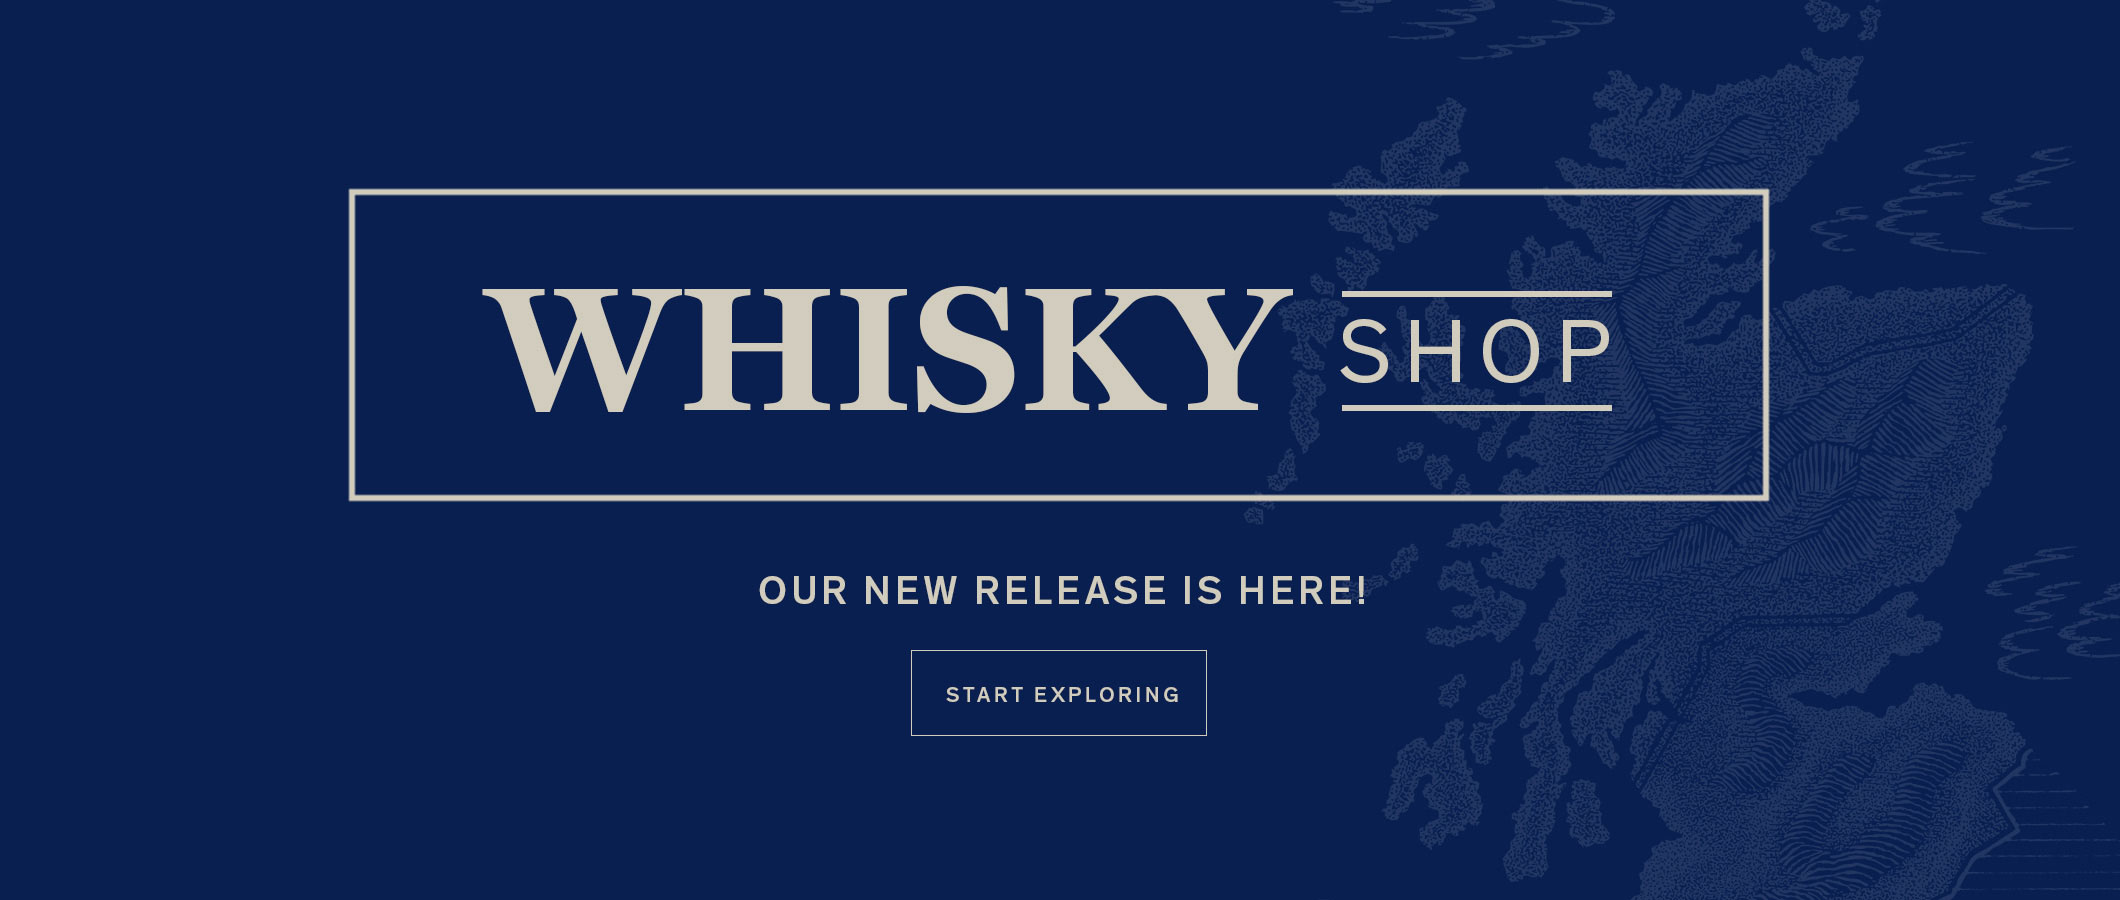 Whisky Shop  Our New Release is Here!  START EXPLORING